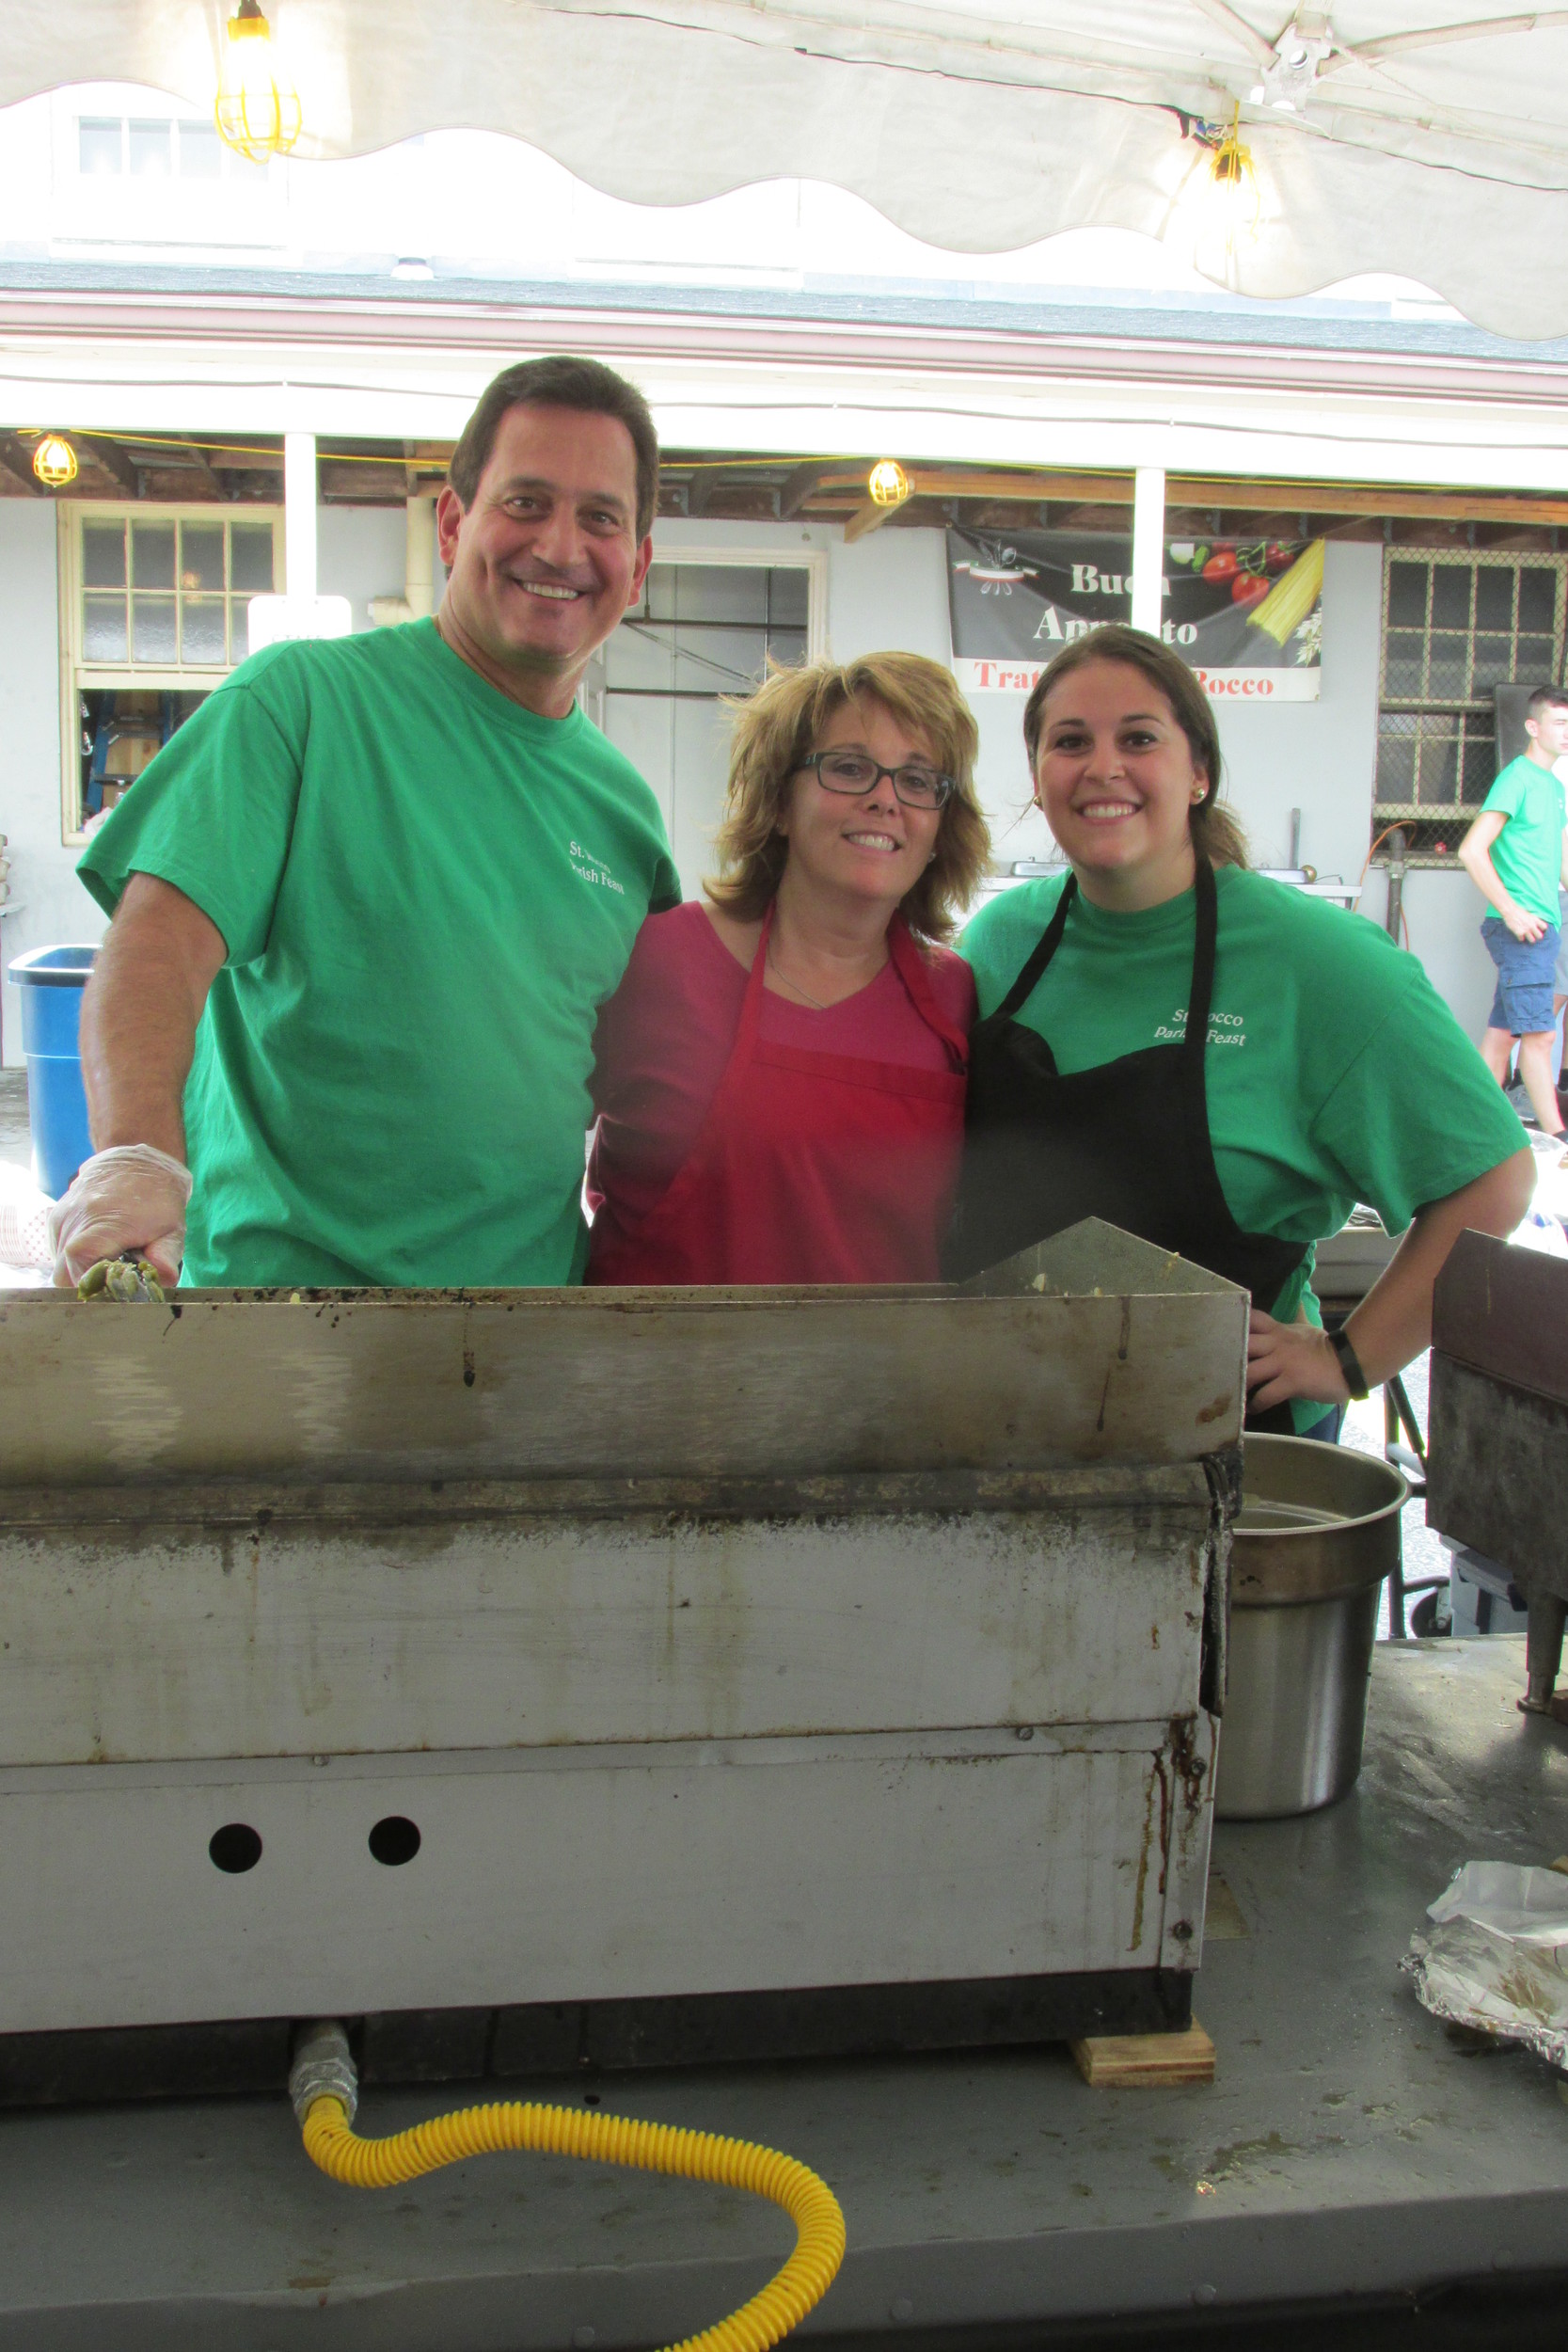 FAMILY FUN: The Montecalvo's – Mike, Marcia and Brianna – were among the many proud parishioners who helped make last weekend's Saint Rocco Feast and Festival a huge success. The famed WPRI-TV news anchor spent much of Saturday and Sunday cooking sausage and pepper sandwiches.